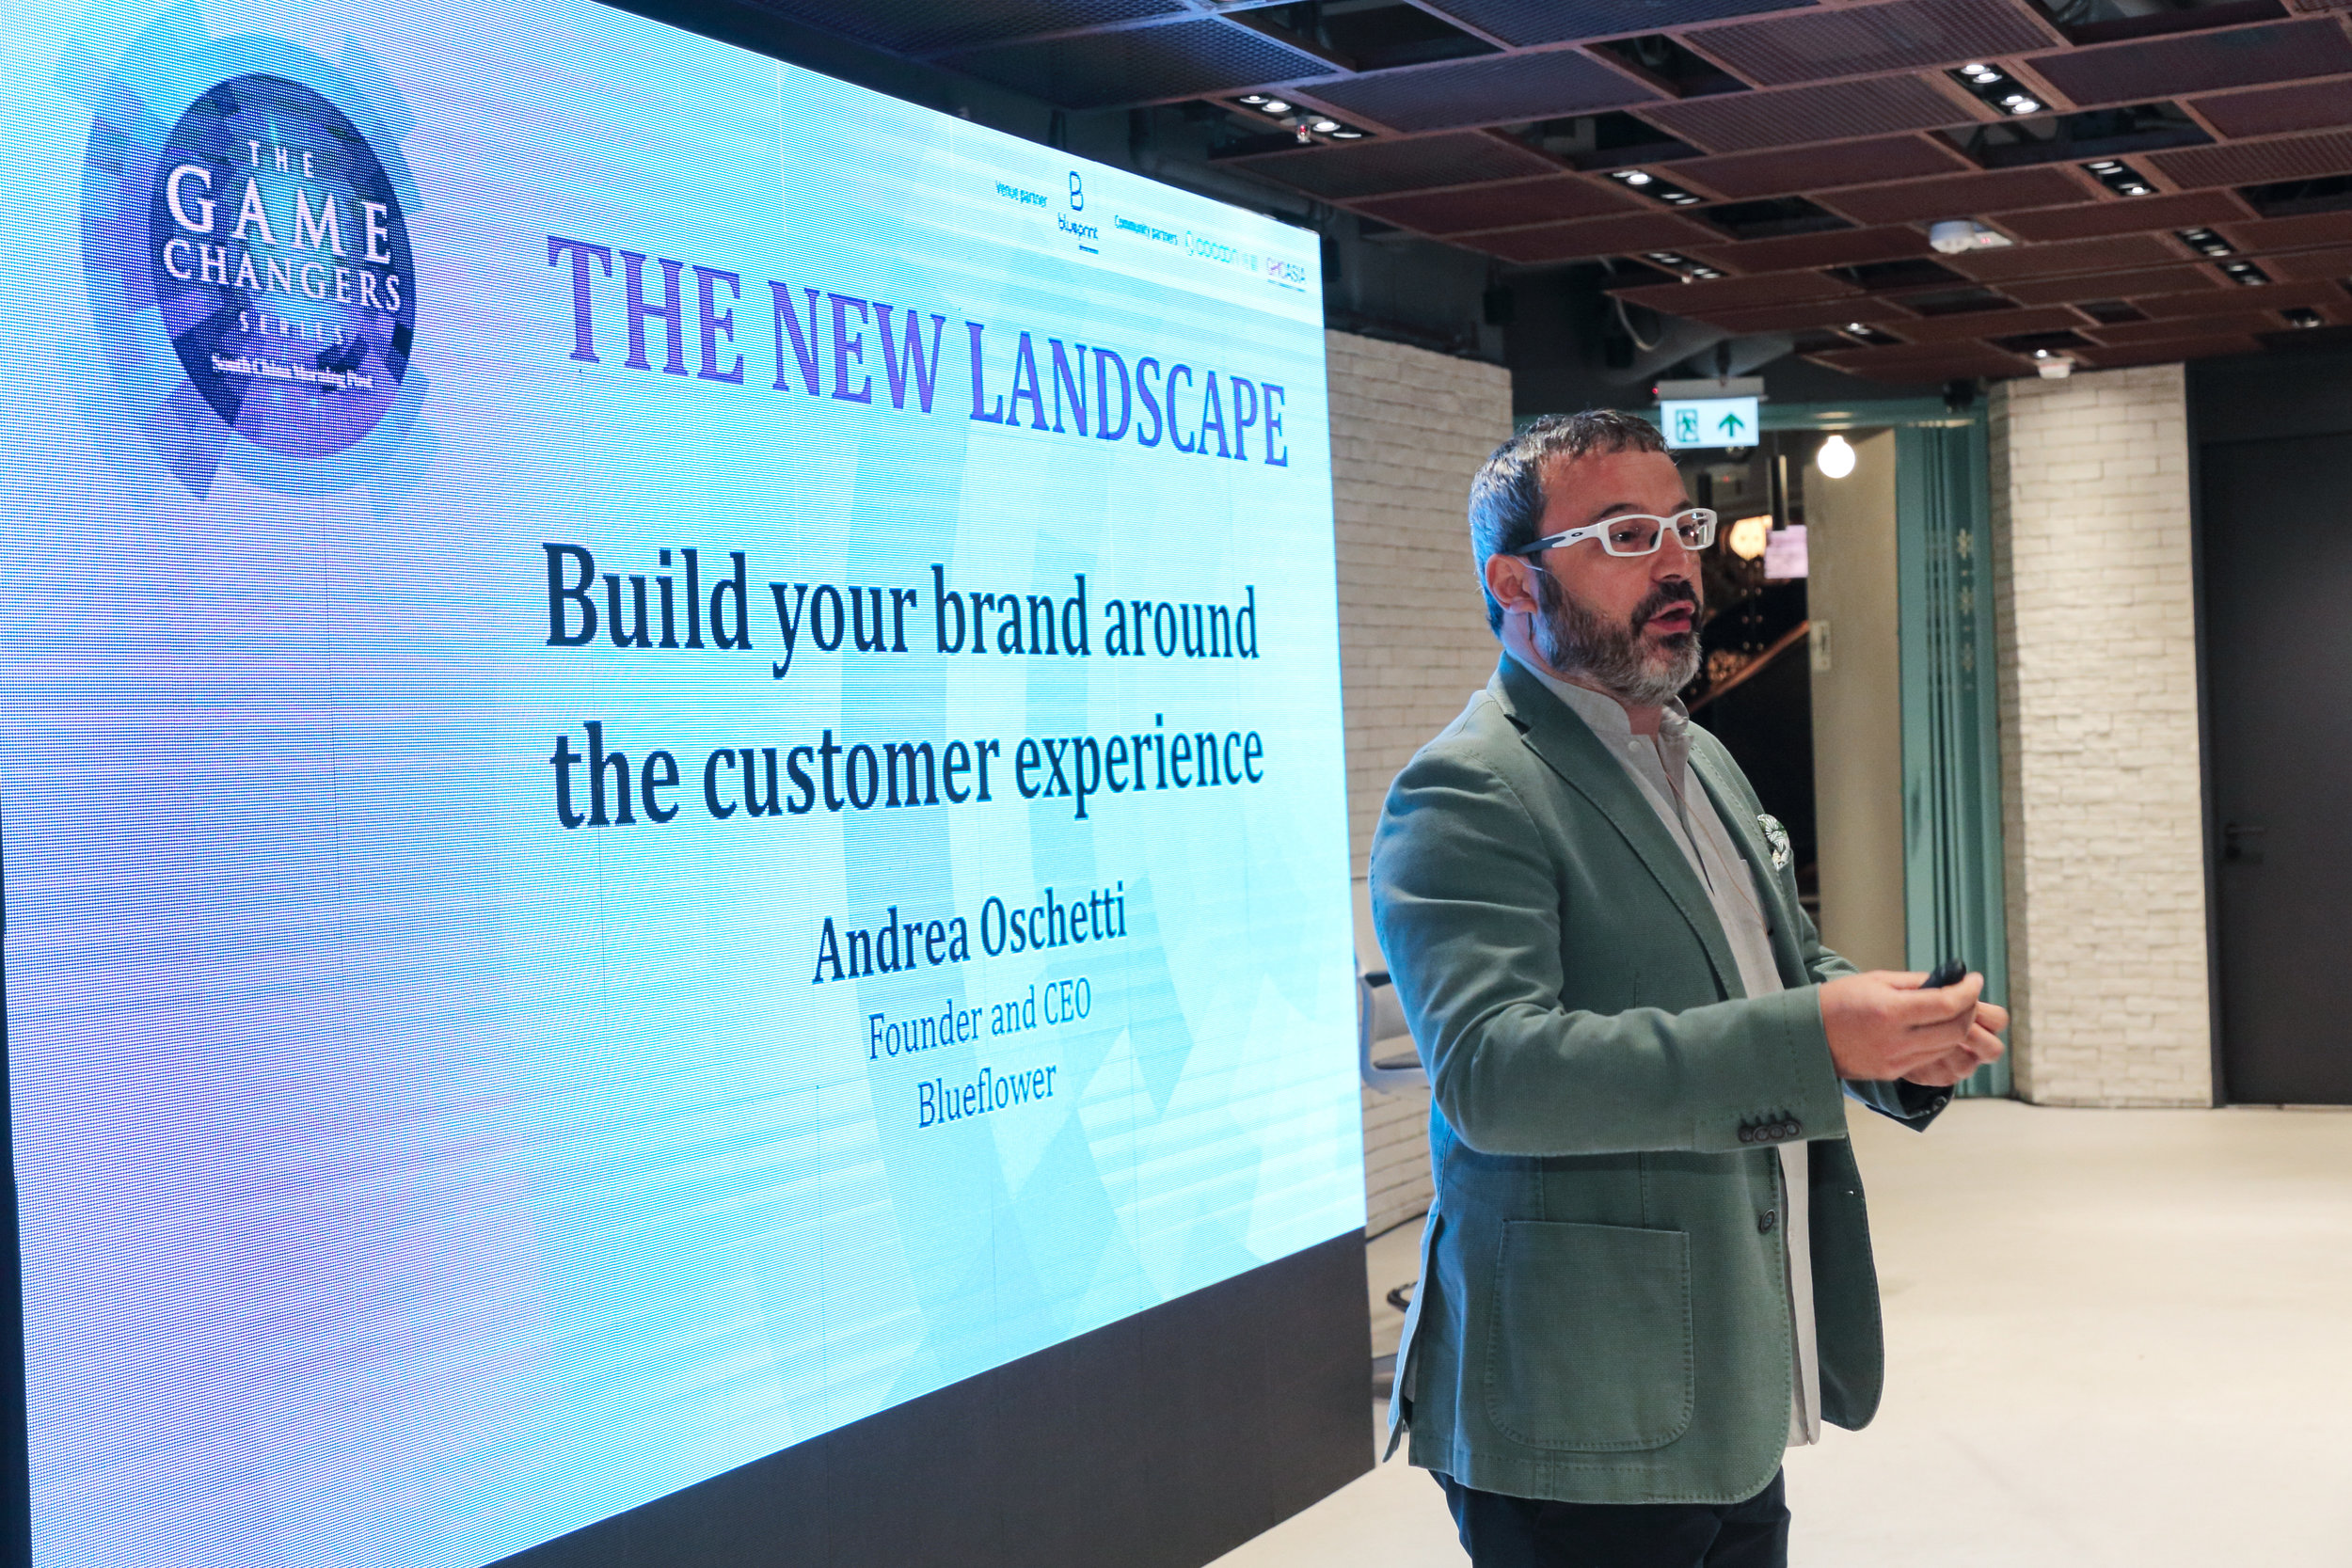 """Andrea Oschetti, Founder and CEO, Blueflower, speaking on """"Build your brand around the customer experience""""."""